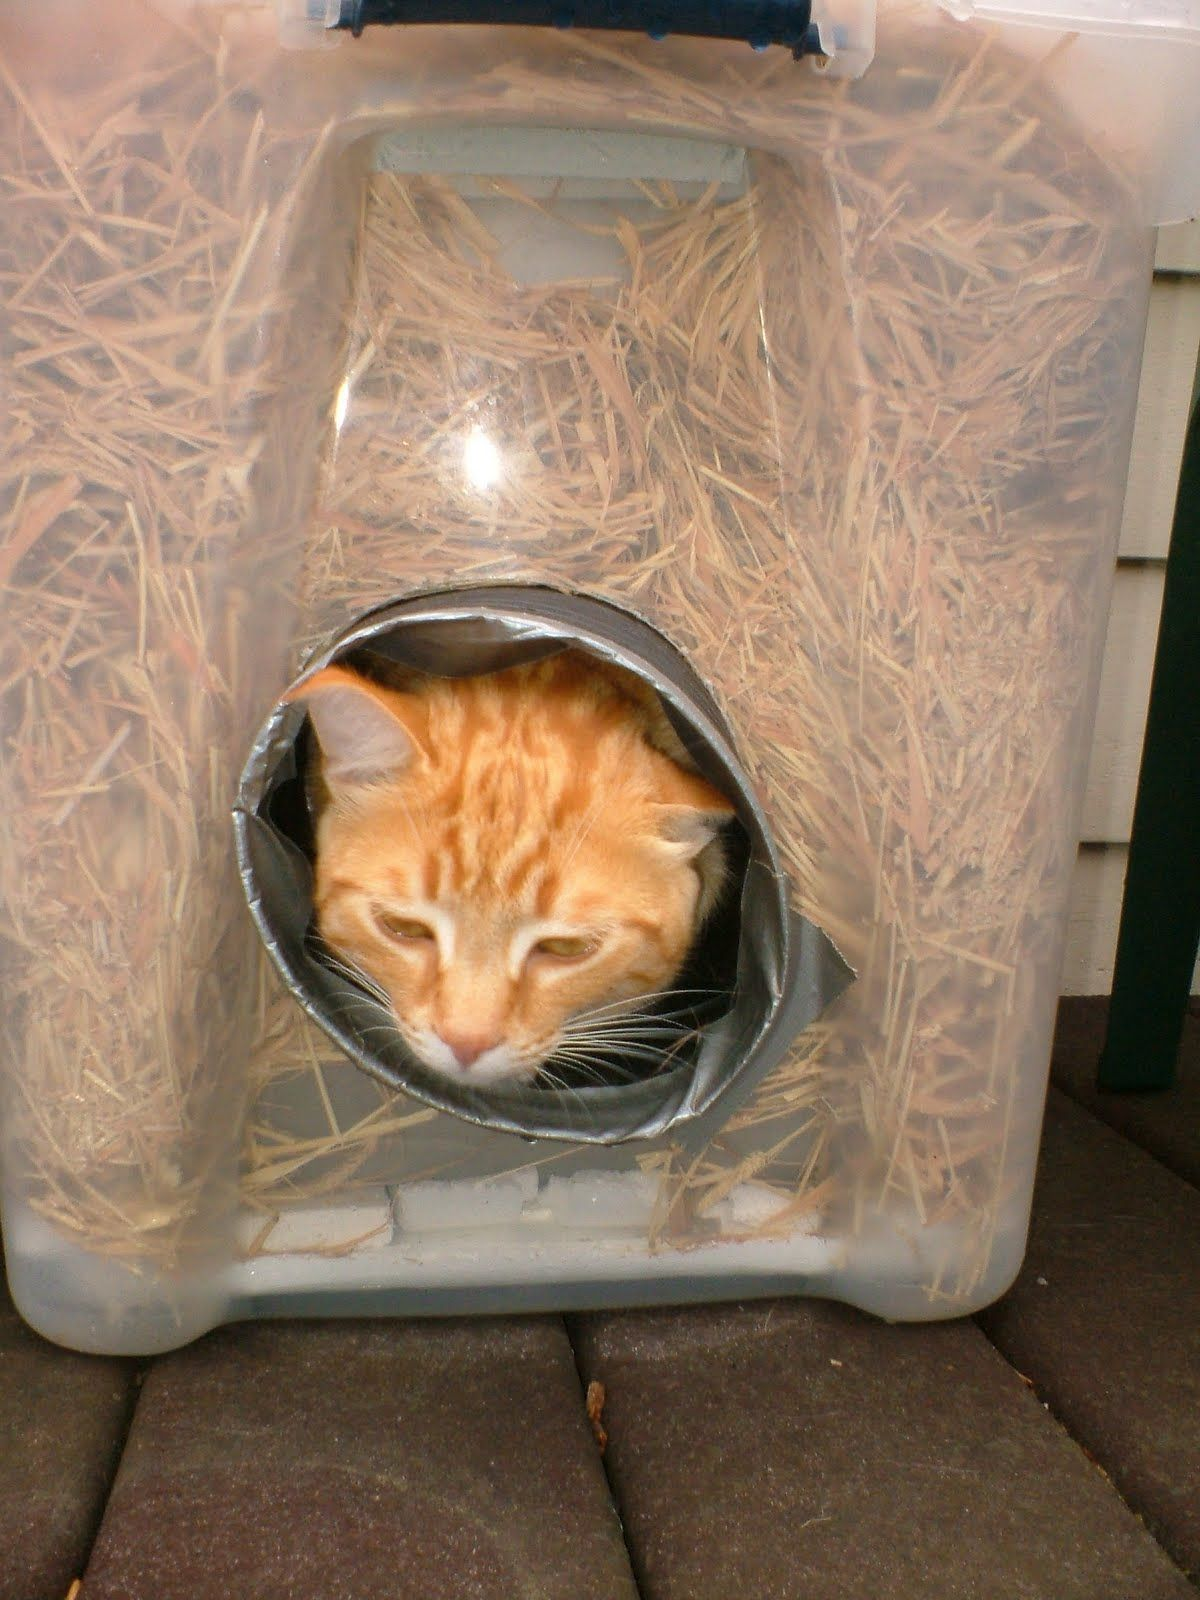 Burrowing in Feral cat shelter, Outdoor cat house